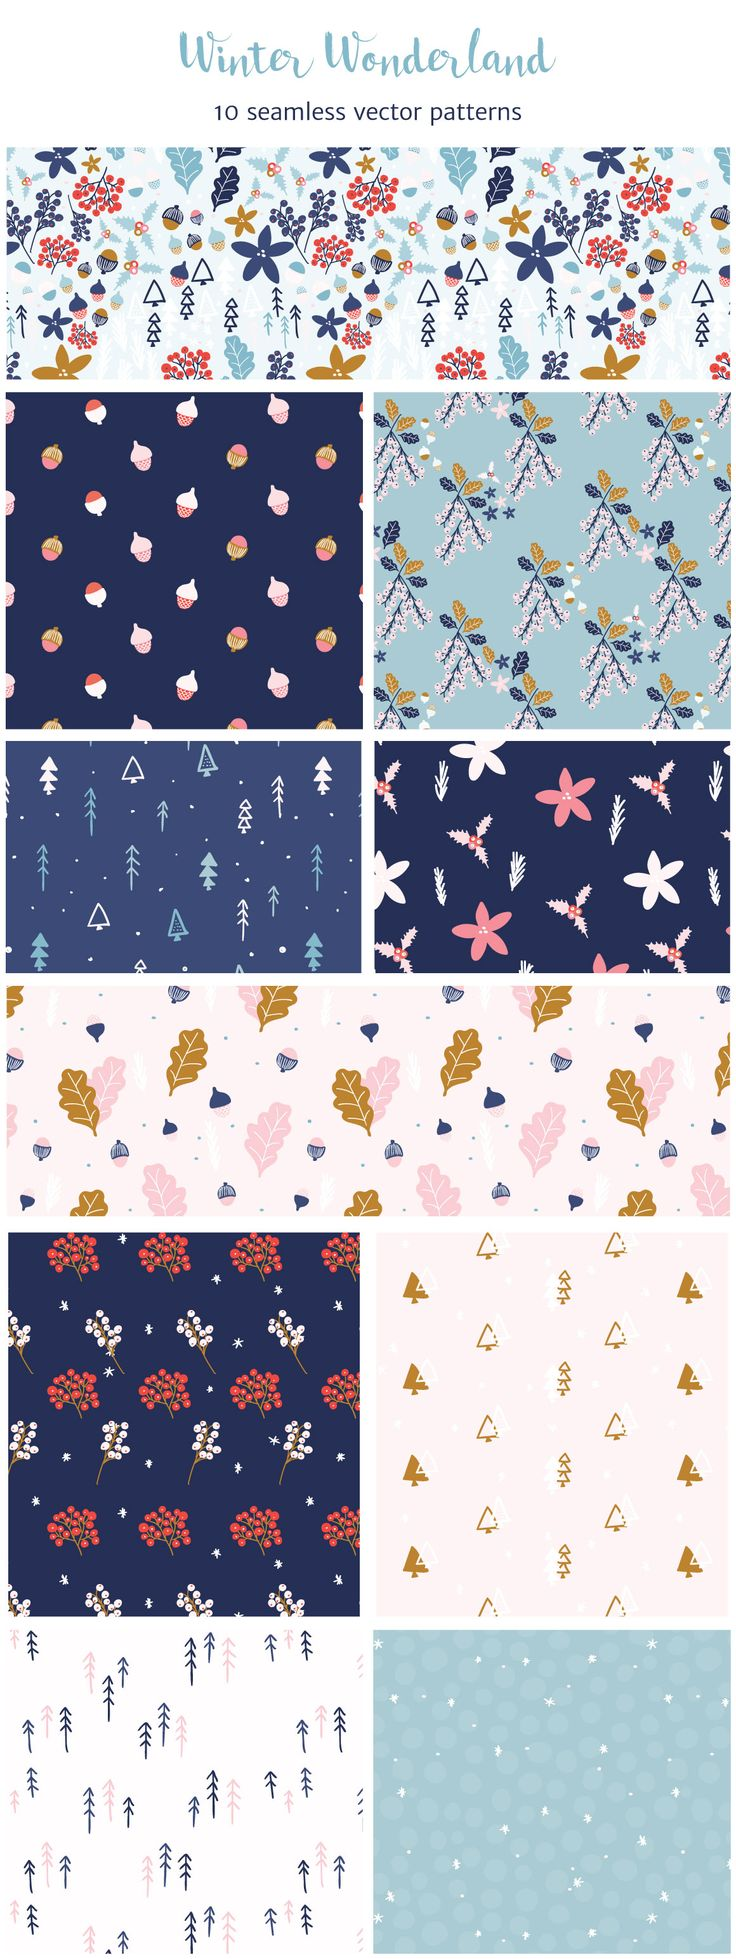 Winter Wonderland is a collection of 10 hand drawn floral patterns with a winter holiday feel.